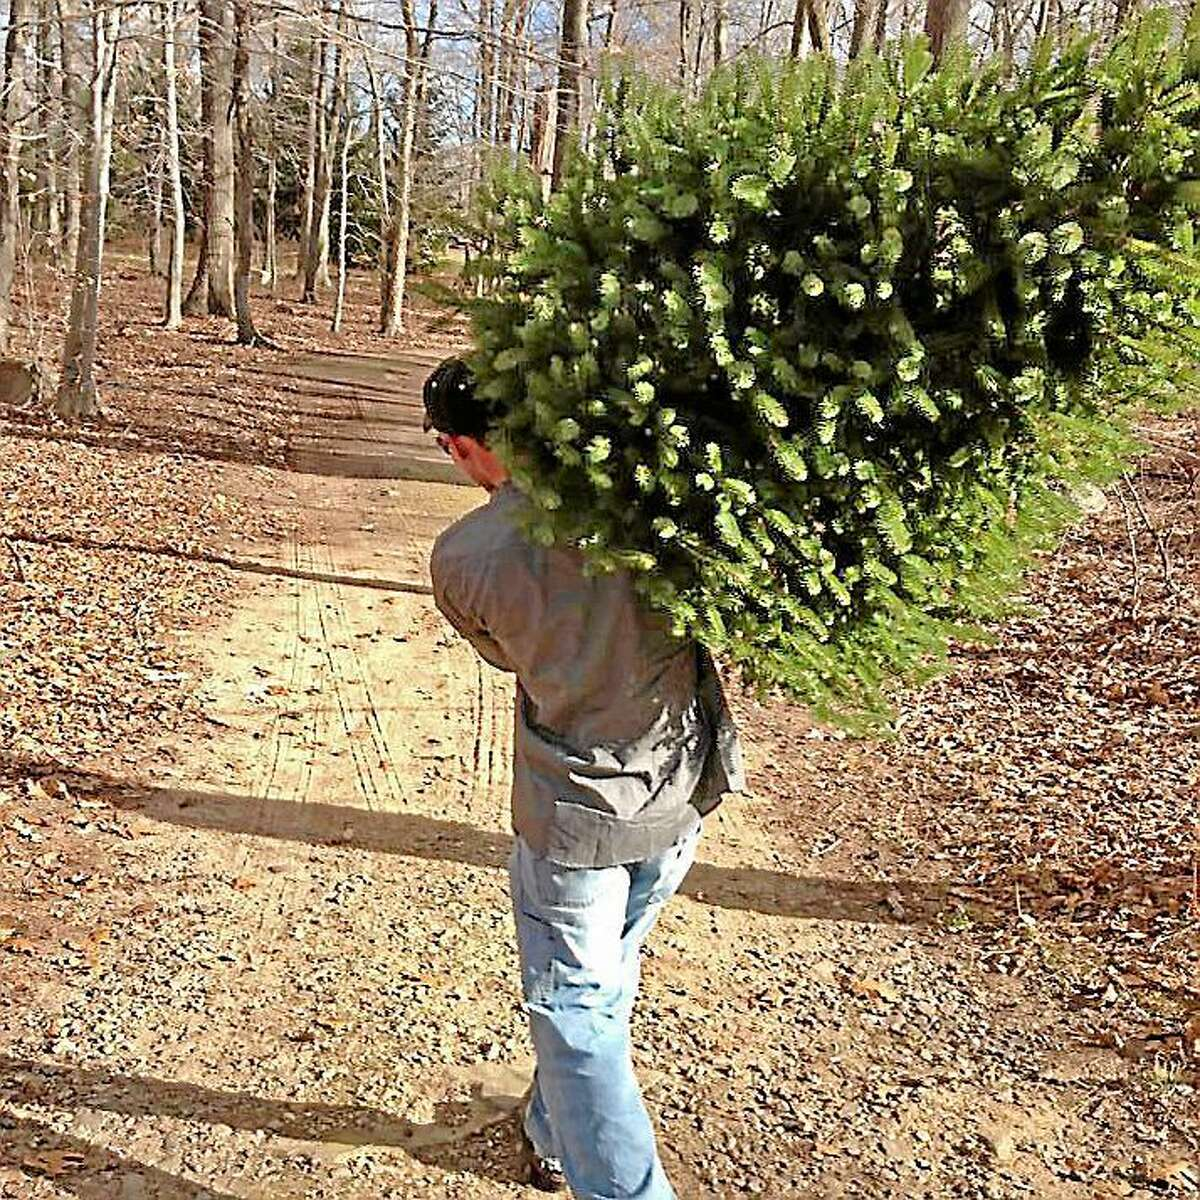 Christmas tree pickup is ongoing in Middletown, weather permitting.